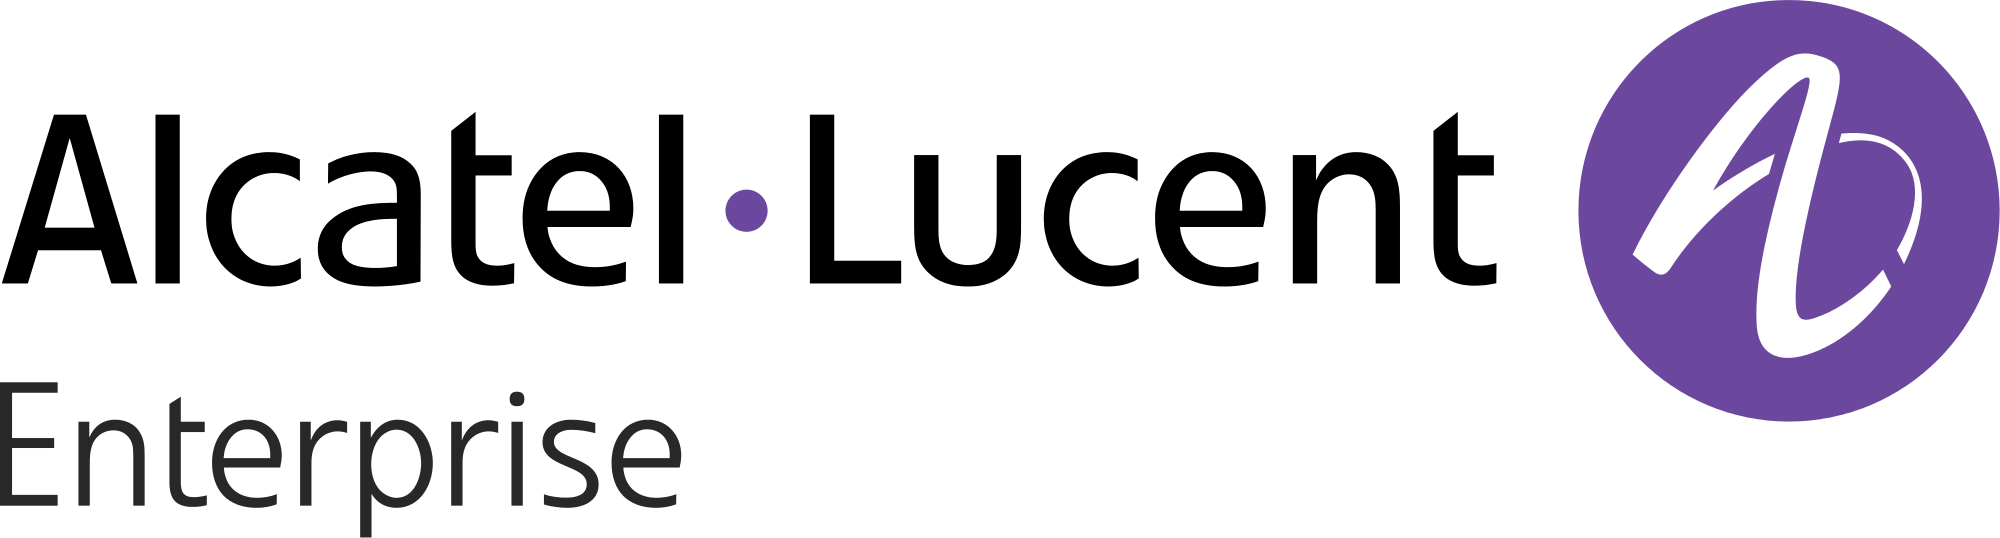 alcatel_lucent_enterprise_logo